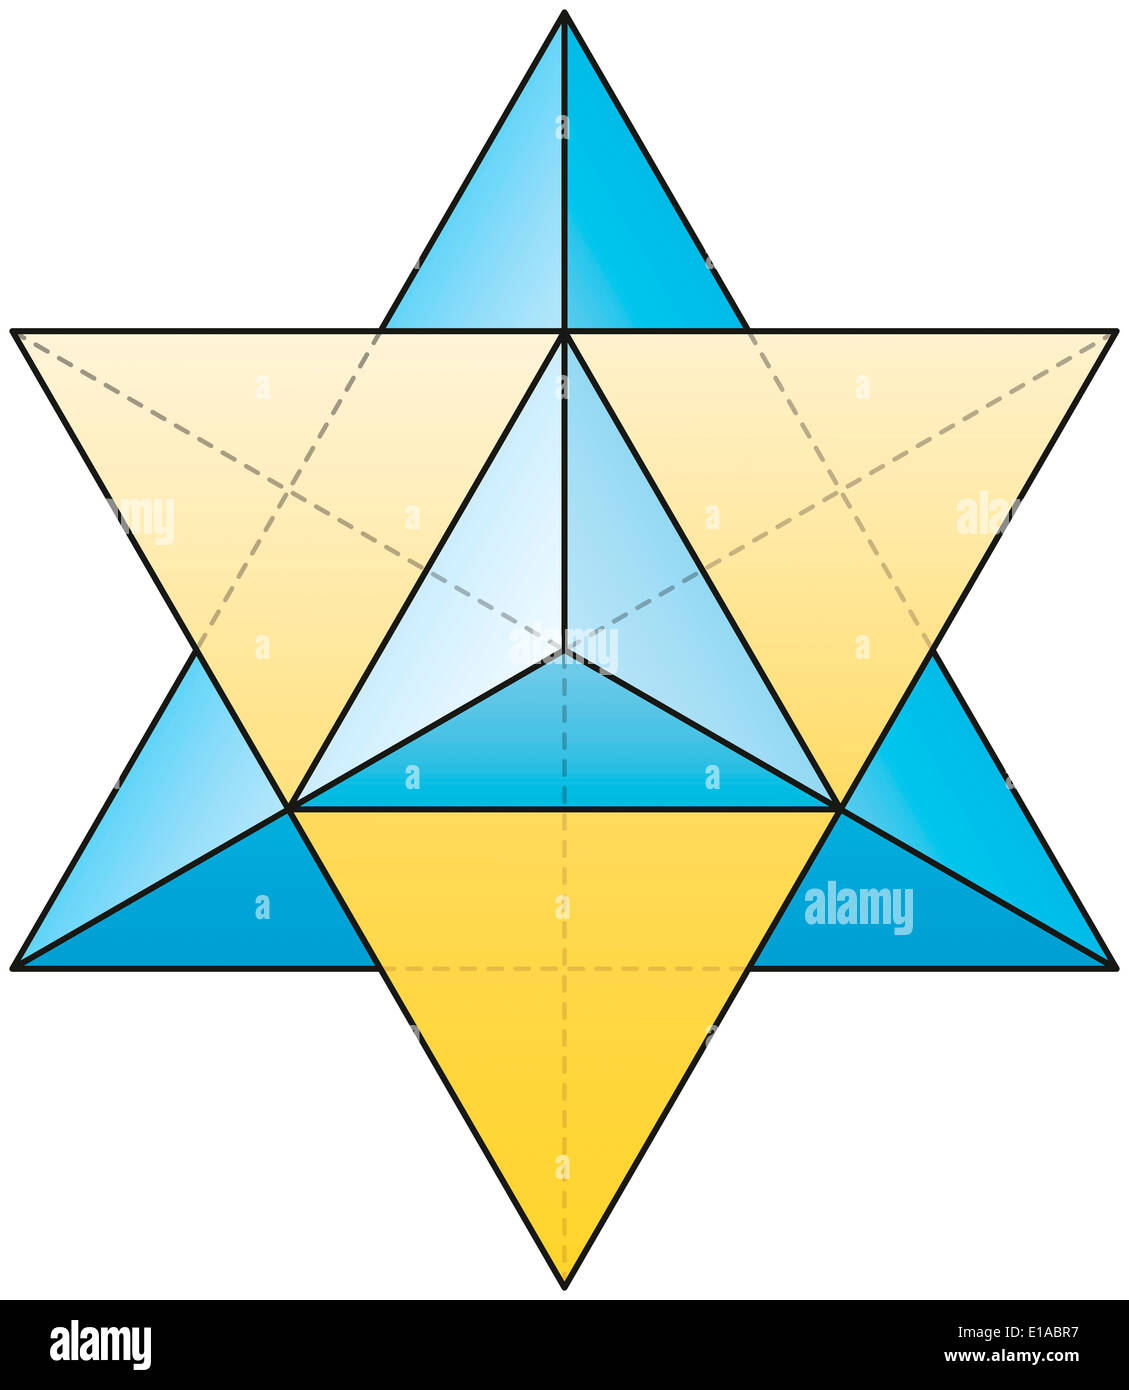 Merkabah - Star Tetrahedron - A stellated octahedron, or stella octangula, can be seen as a 3D extension of the Star of David. - Stock Image